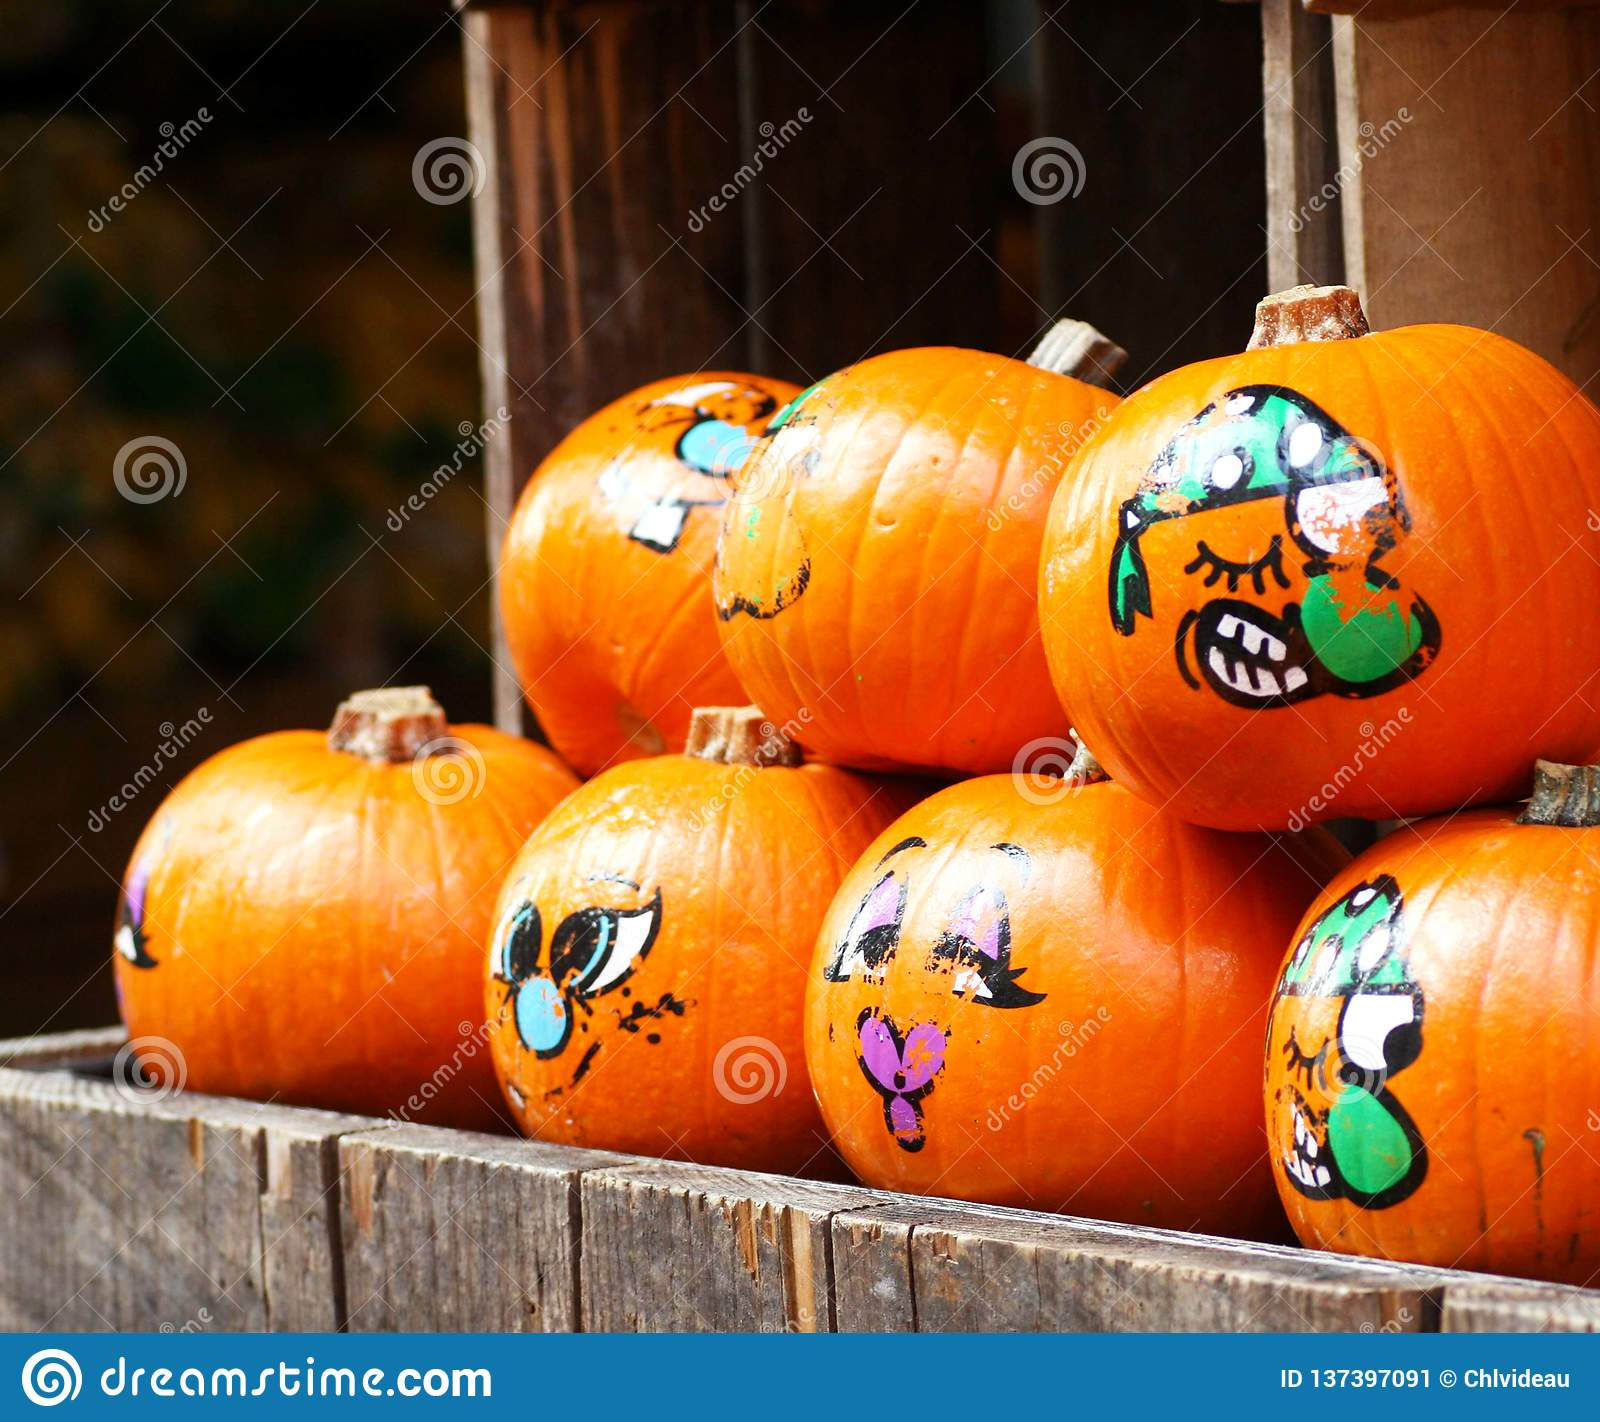 Painted decorative organic pumpkins in a market